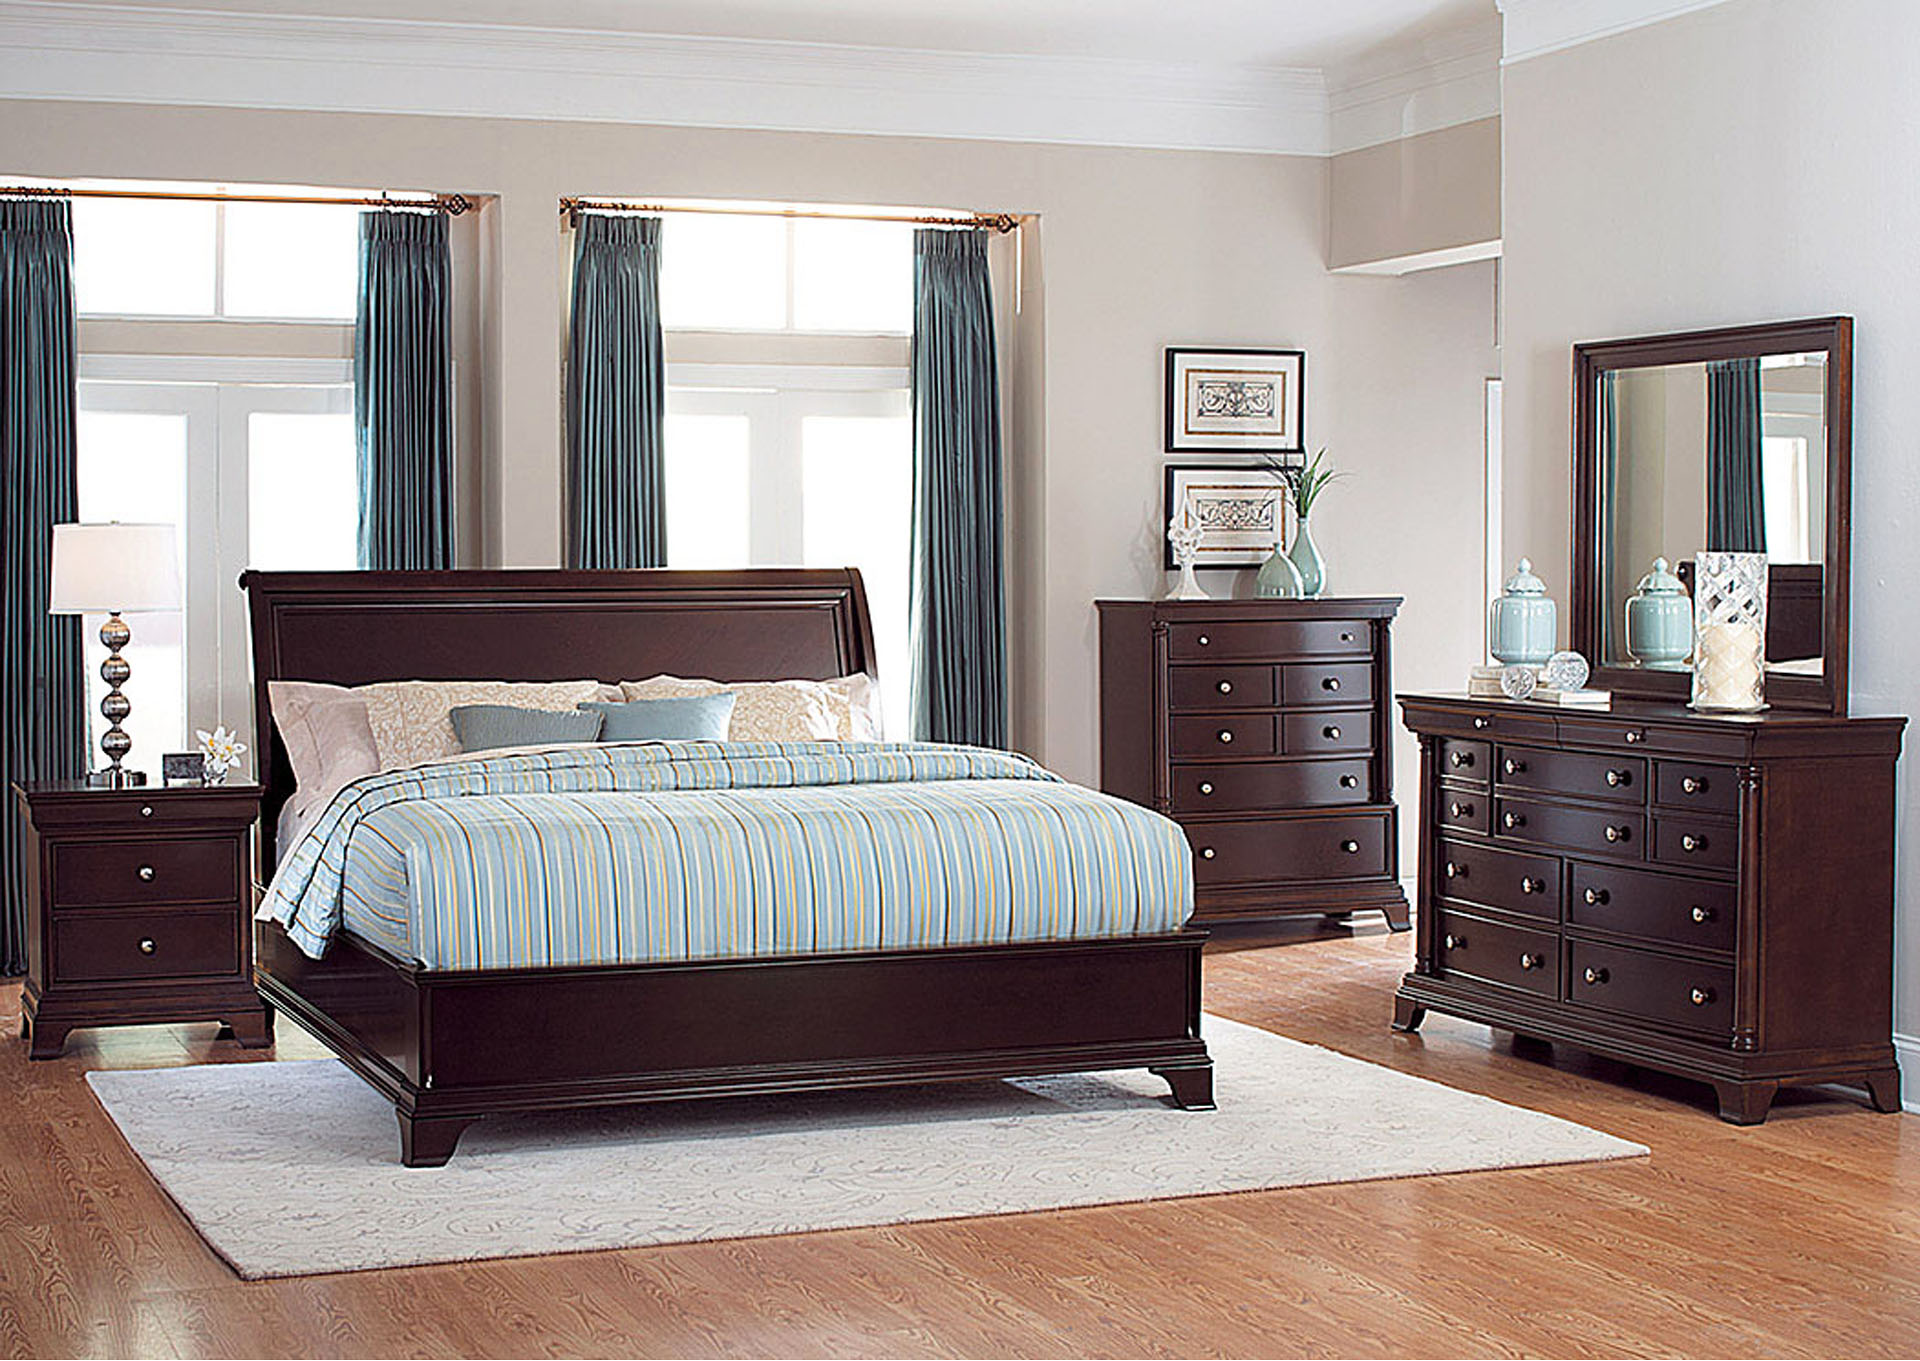 Inglewood Espresso Queen Panel Bed w/ Dresser, Rectangular Mirror, Drawer Chest and Nightstand,Homelegance